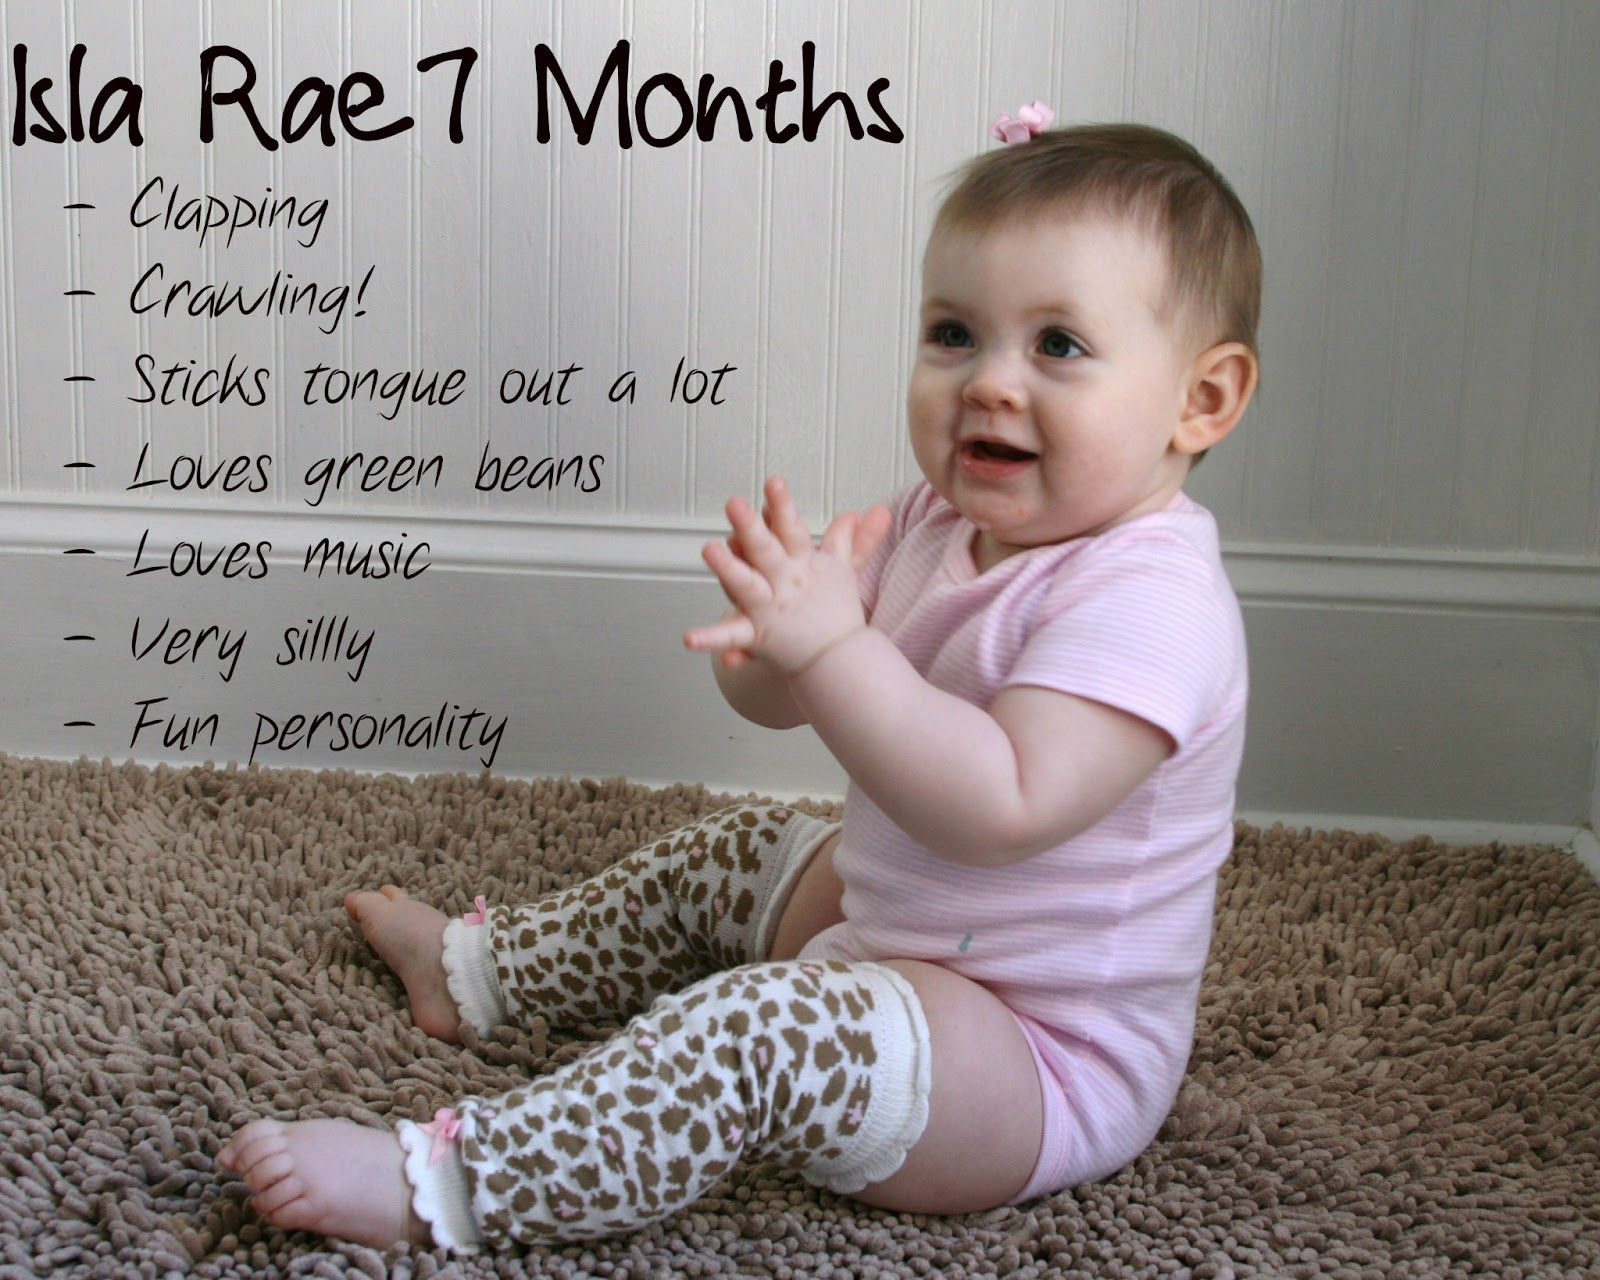 What can a child of 7 months 4